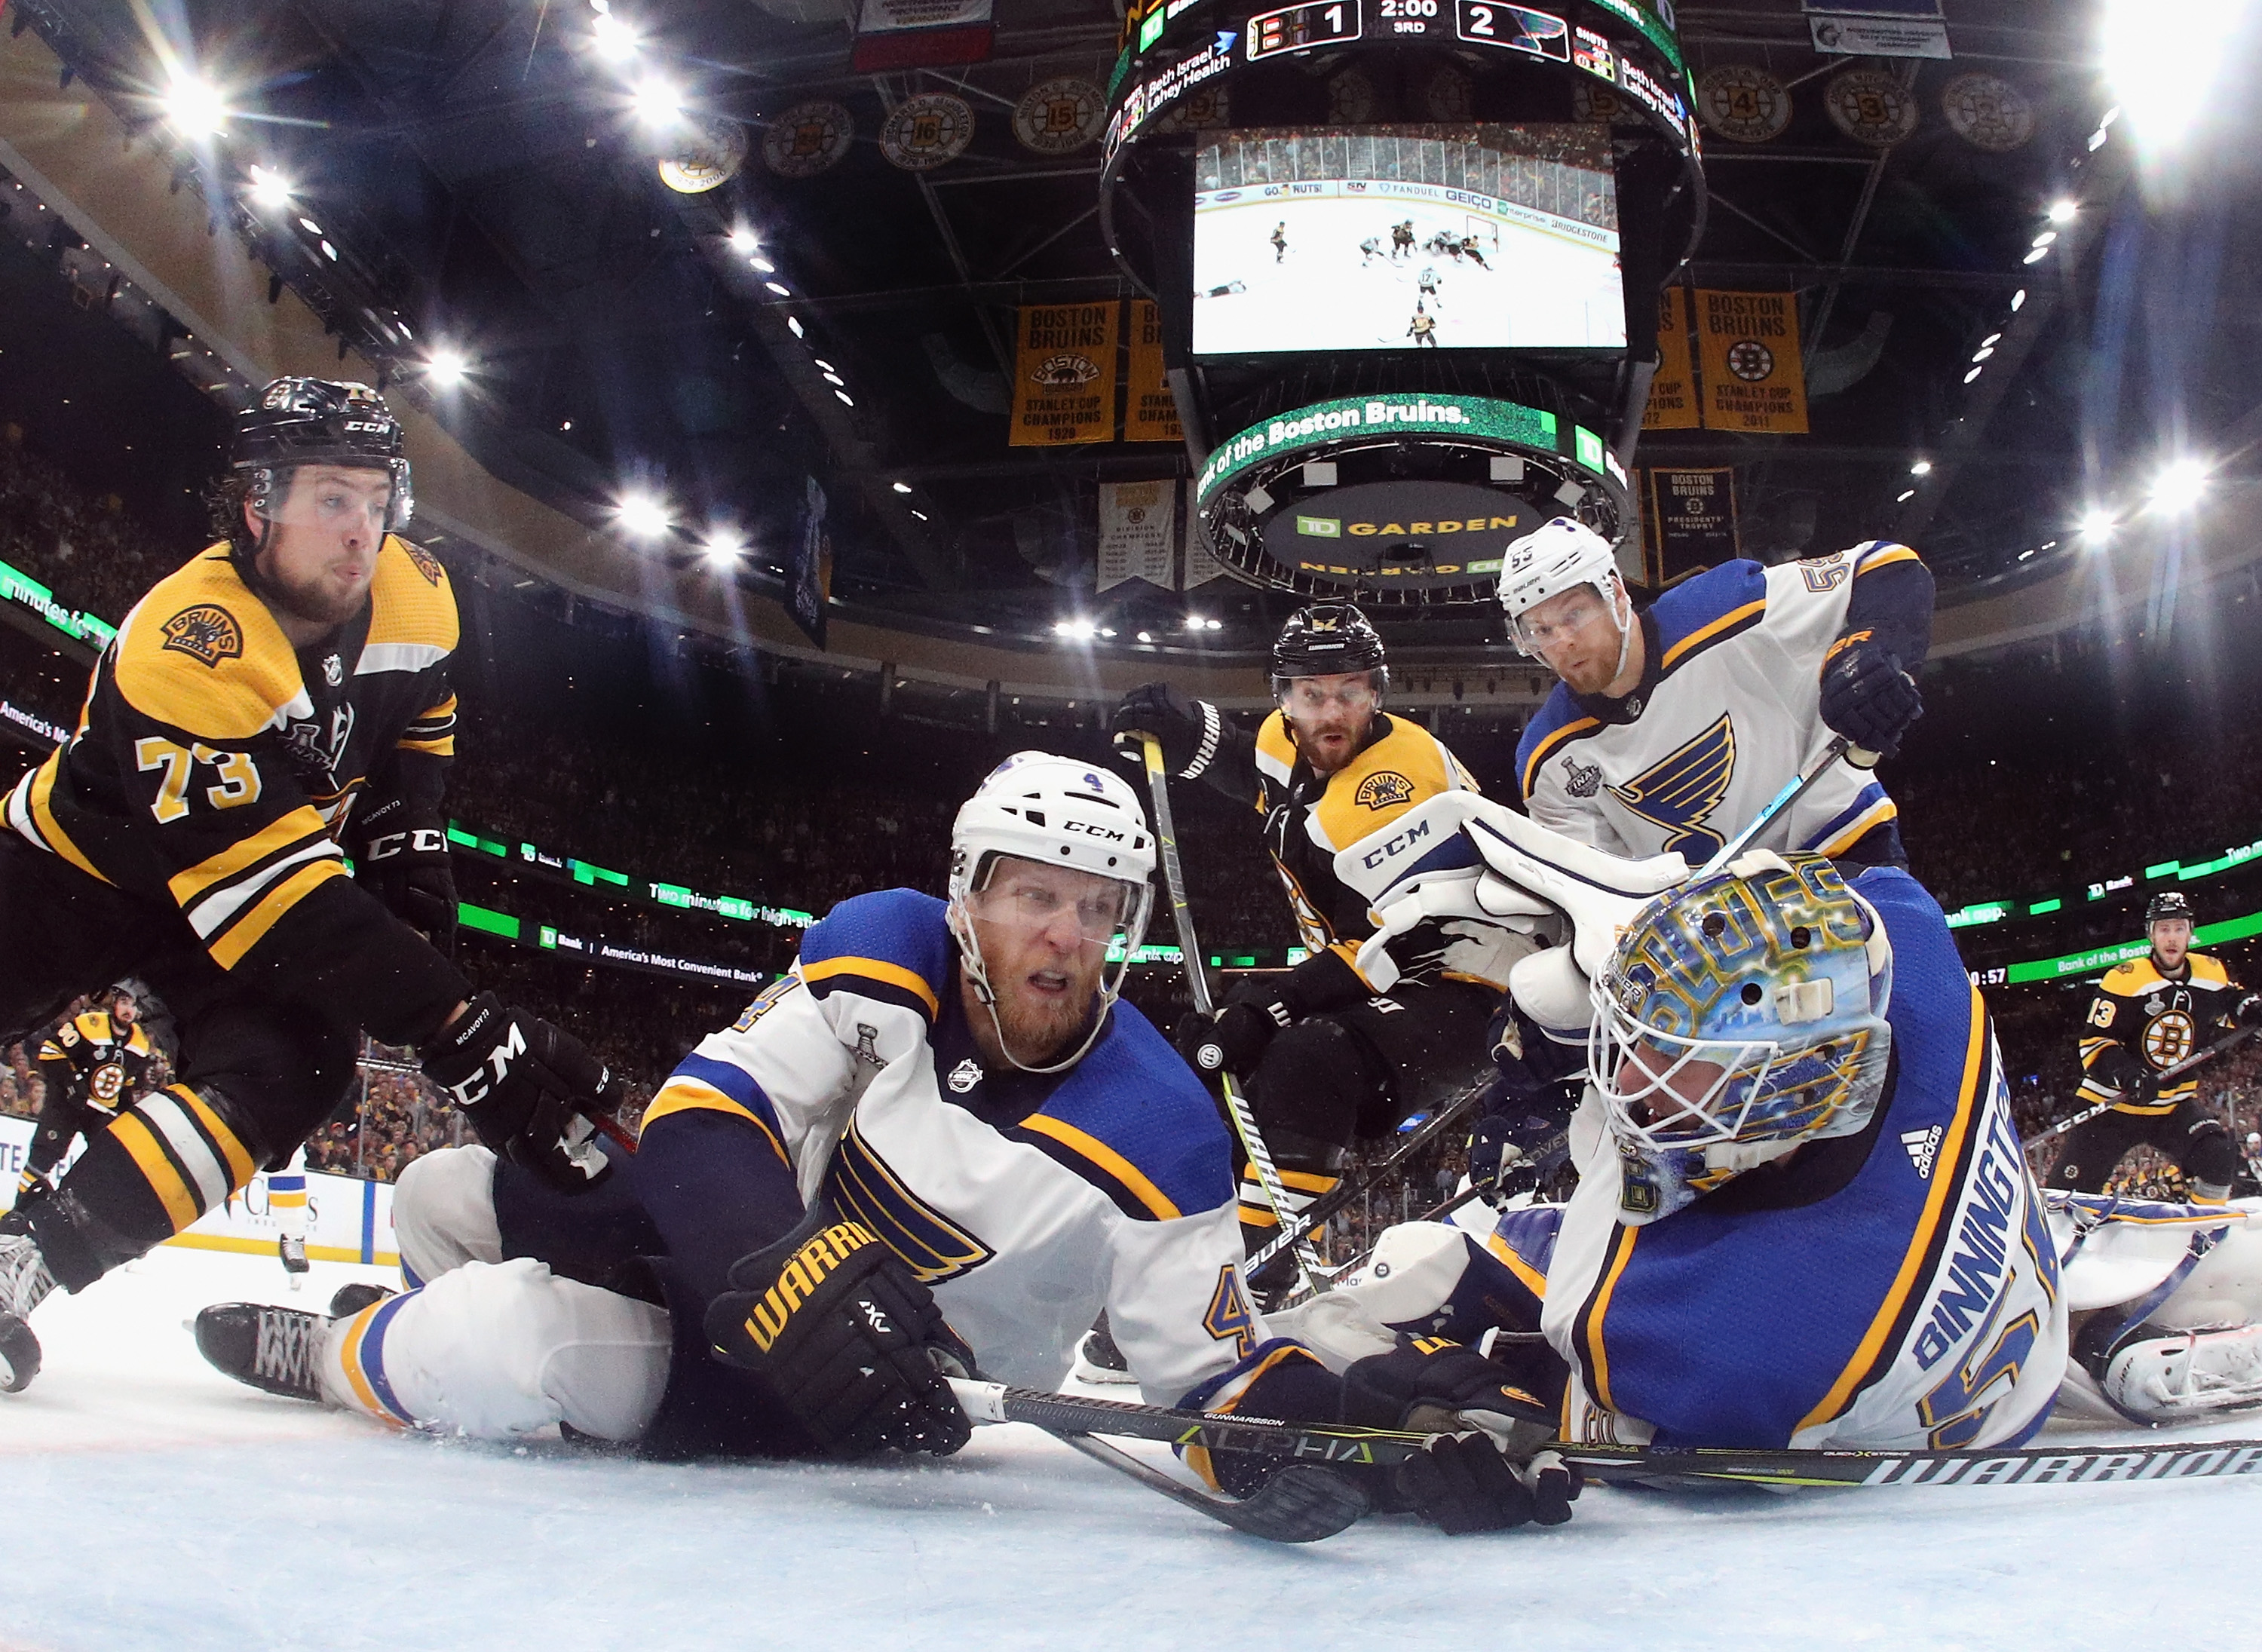 Carl Gunnarsson #4 and Jordan Binnington #50 of the St. Louis Blues defend the goal against the Boston Bruins during the third period in Game Five of the 2019 NHL Stanley Cup Final at TD Garden on June 06, 2019 in Boston, Massachusetts. (Photo by Bruce Bennett/Getty Images)